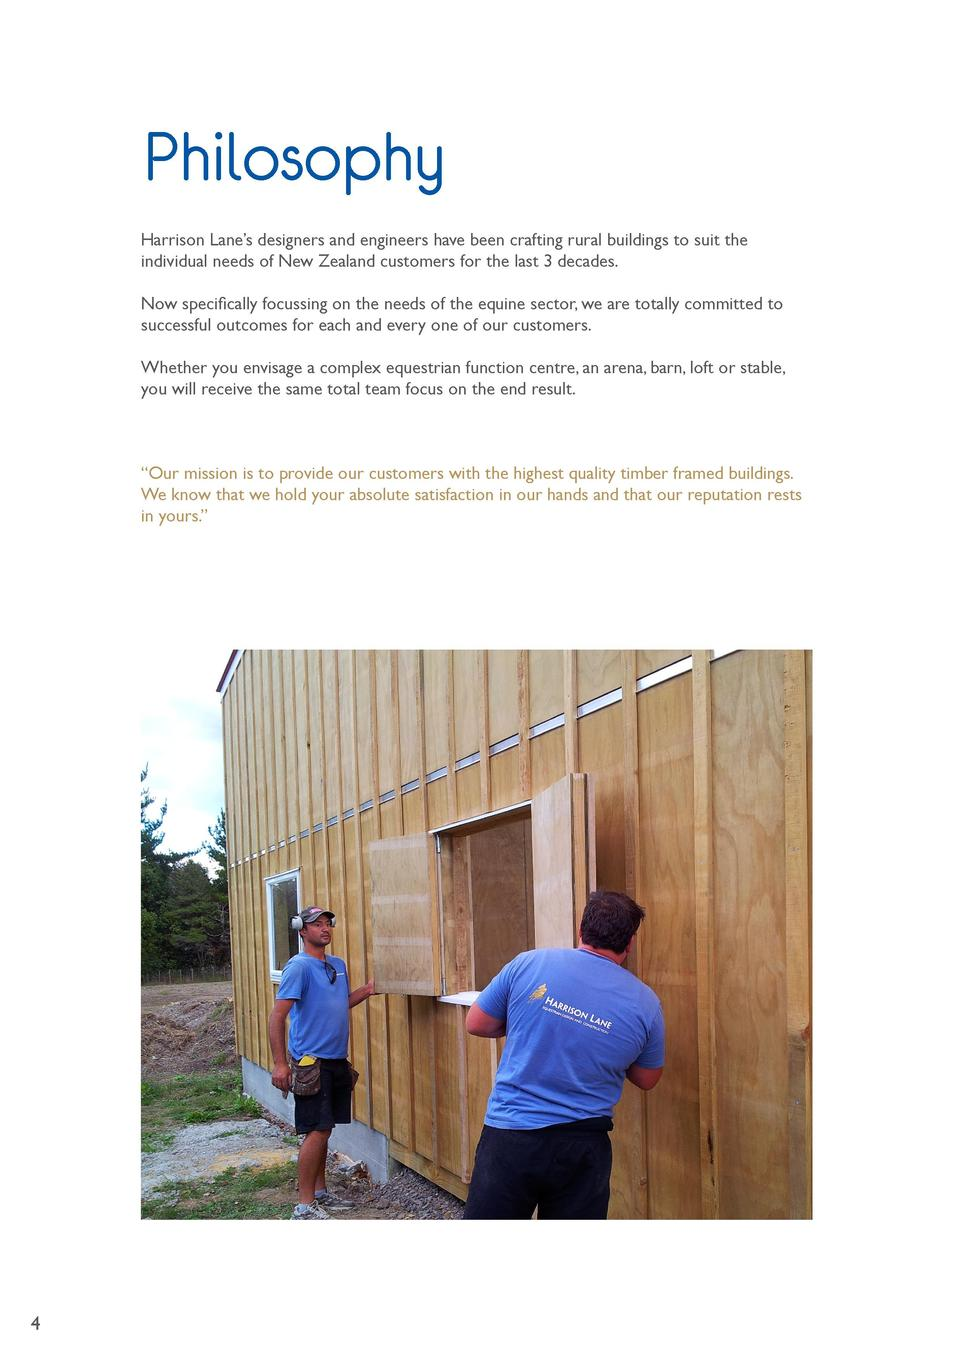 Philosophy Harrison Lane   s designers and engineers have been crafting rural buildings to suit the individual needs of Ne...